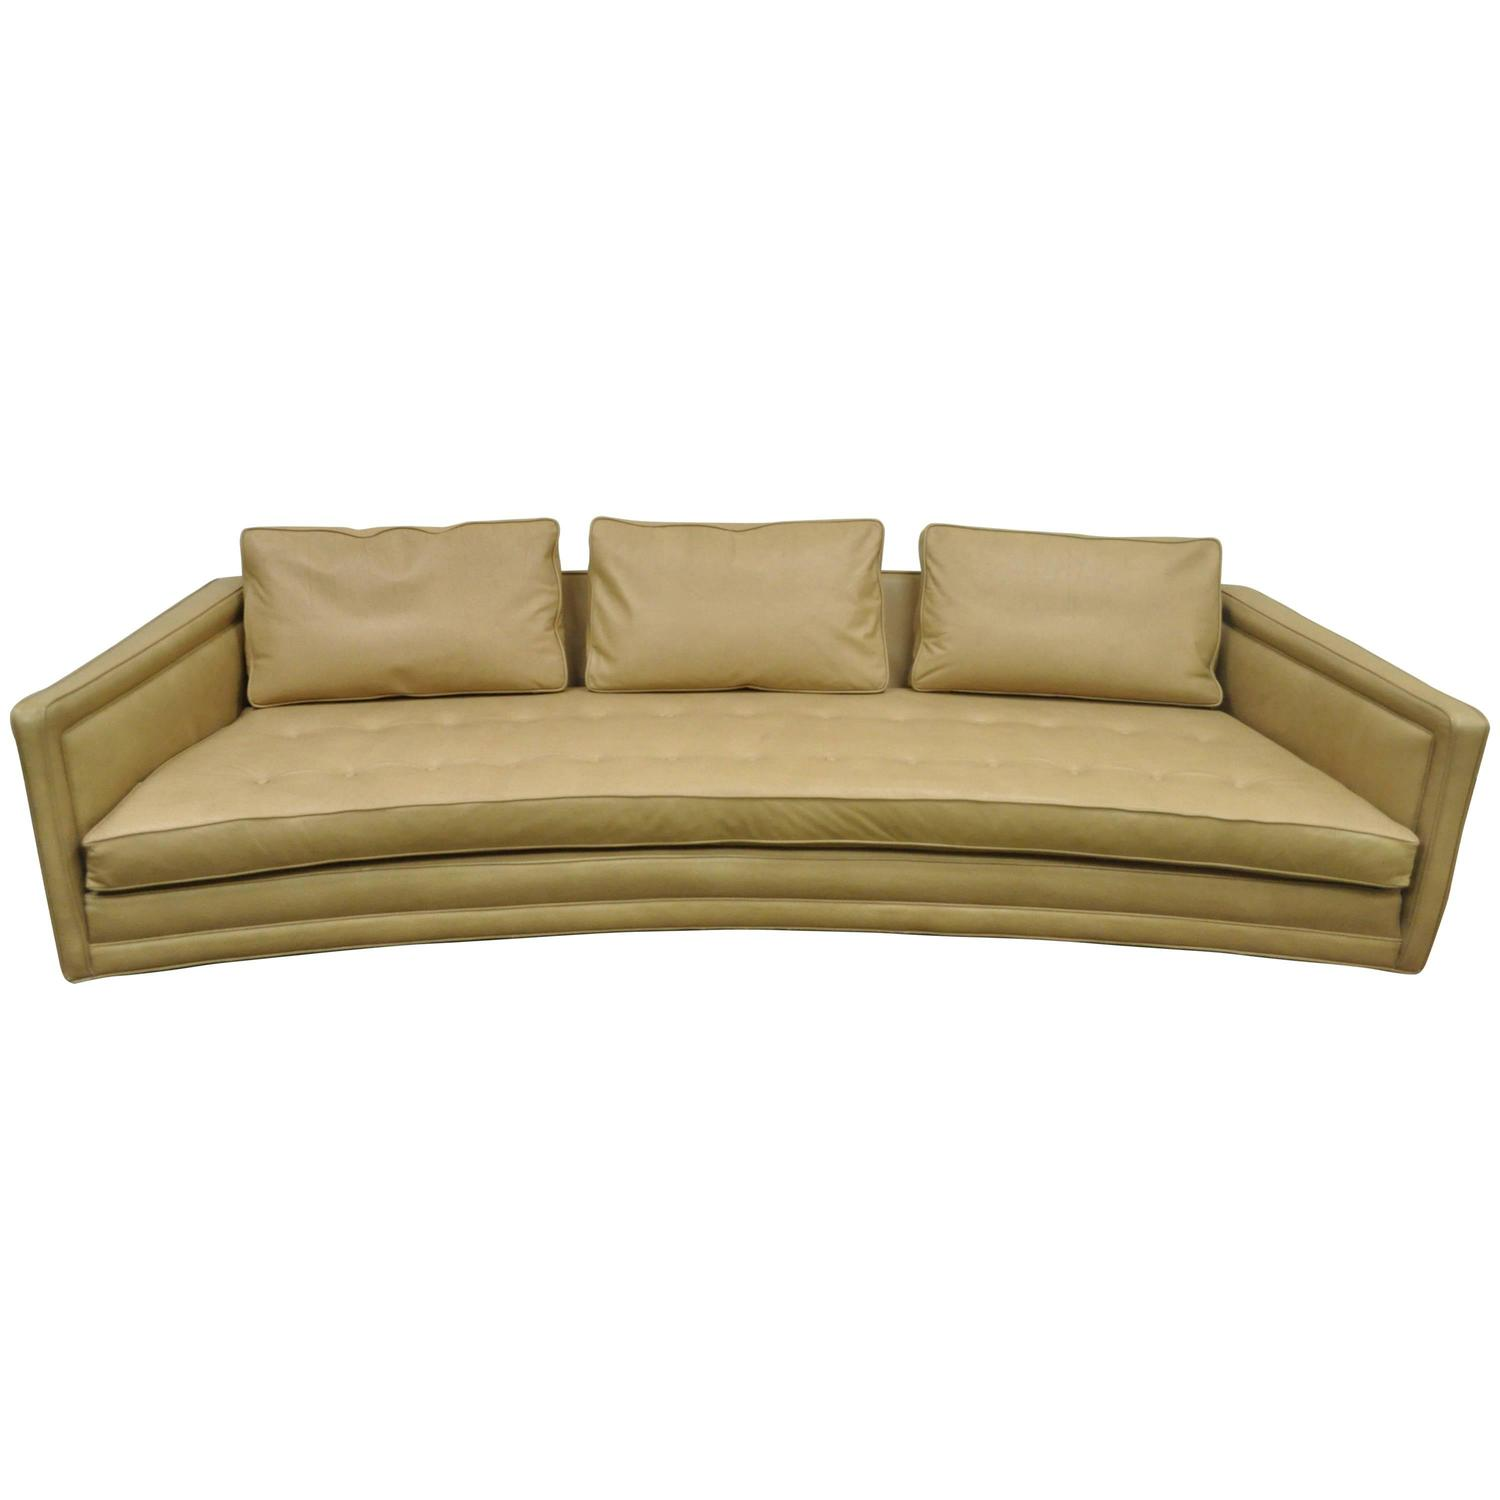 Long curved harvey probber button tufted leather mid for Mid century modern sofas